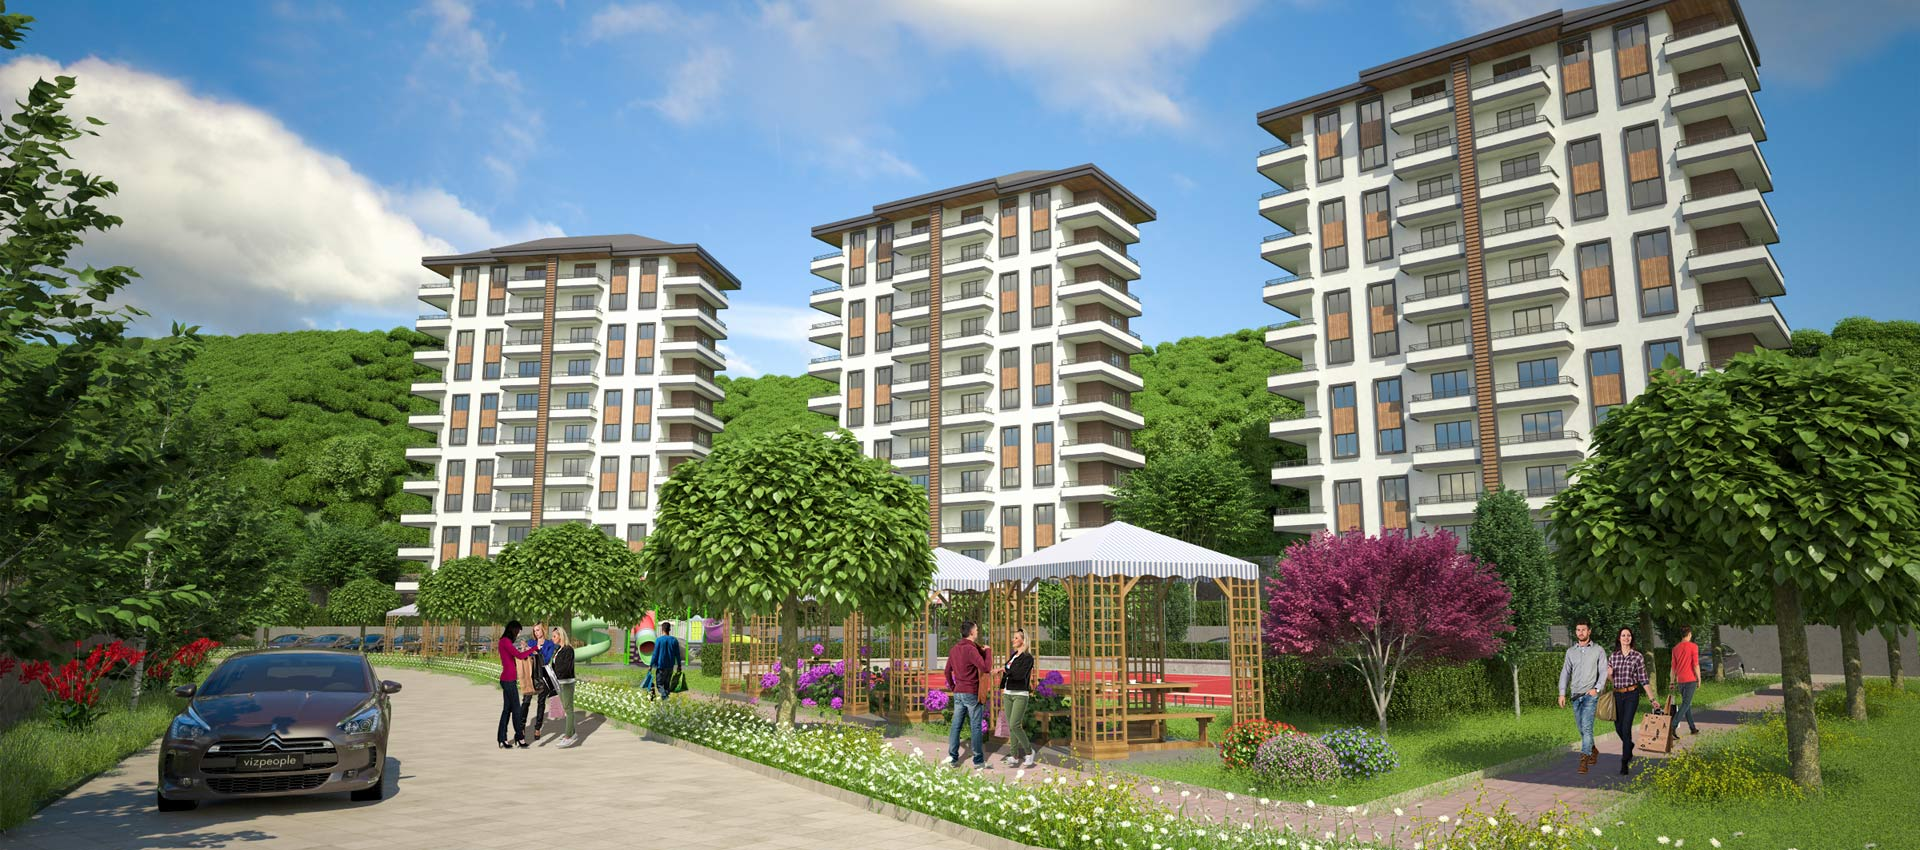 Uzungol Residential Project in Trabzon